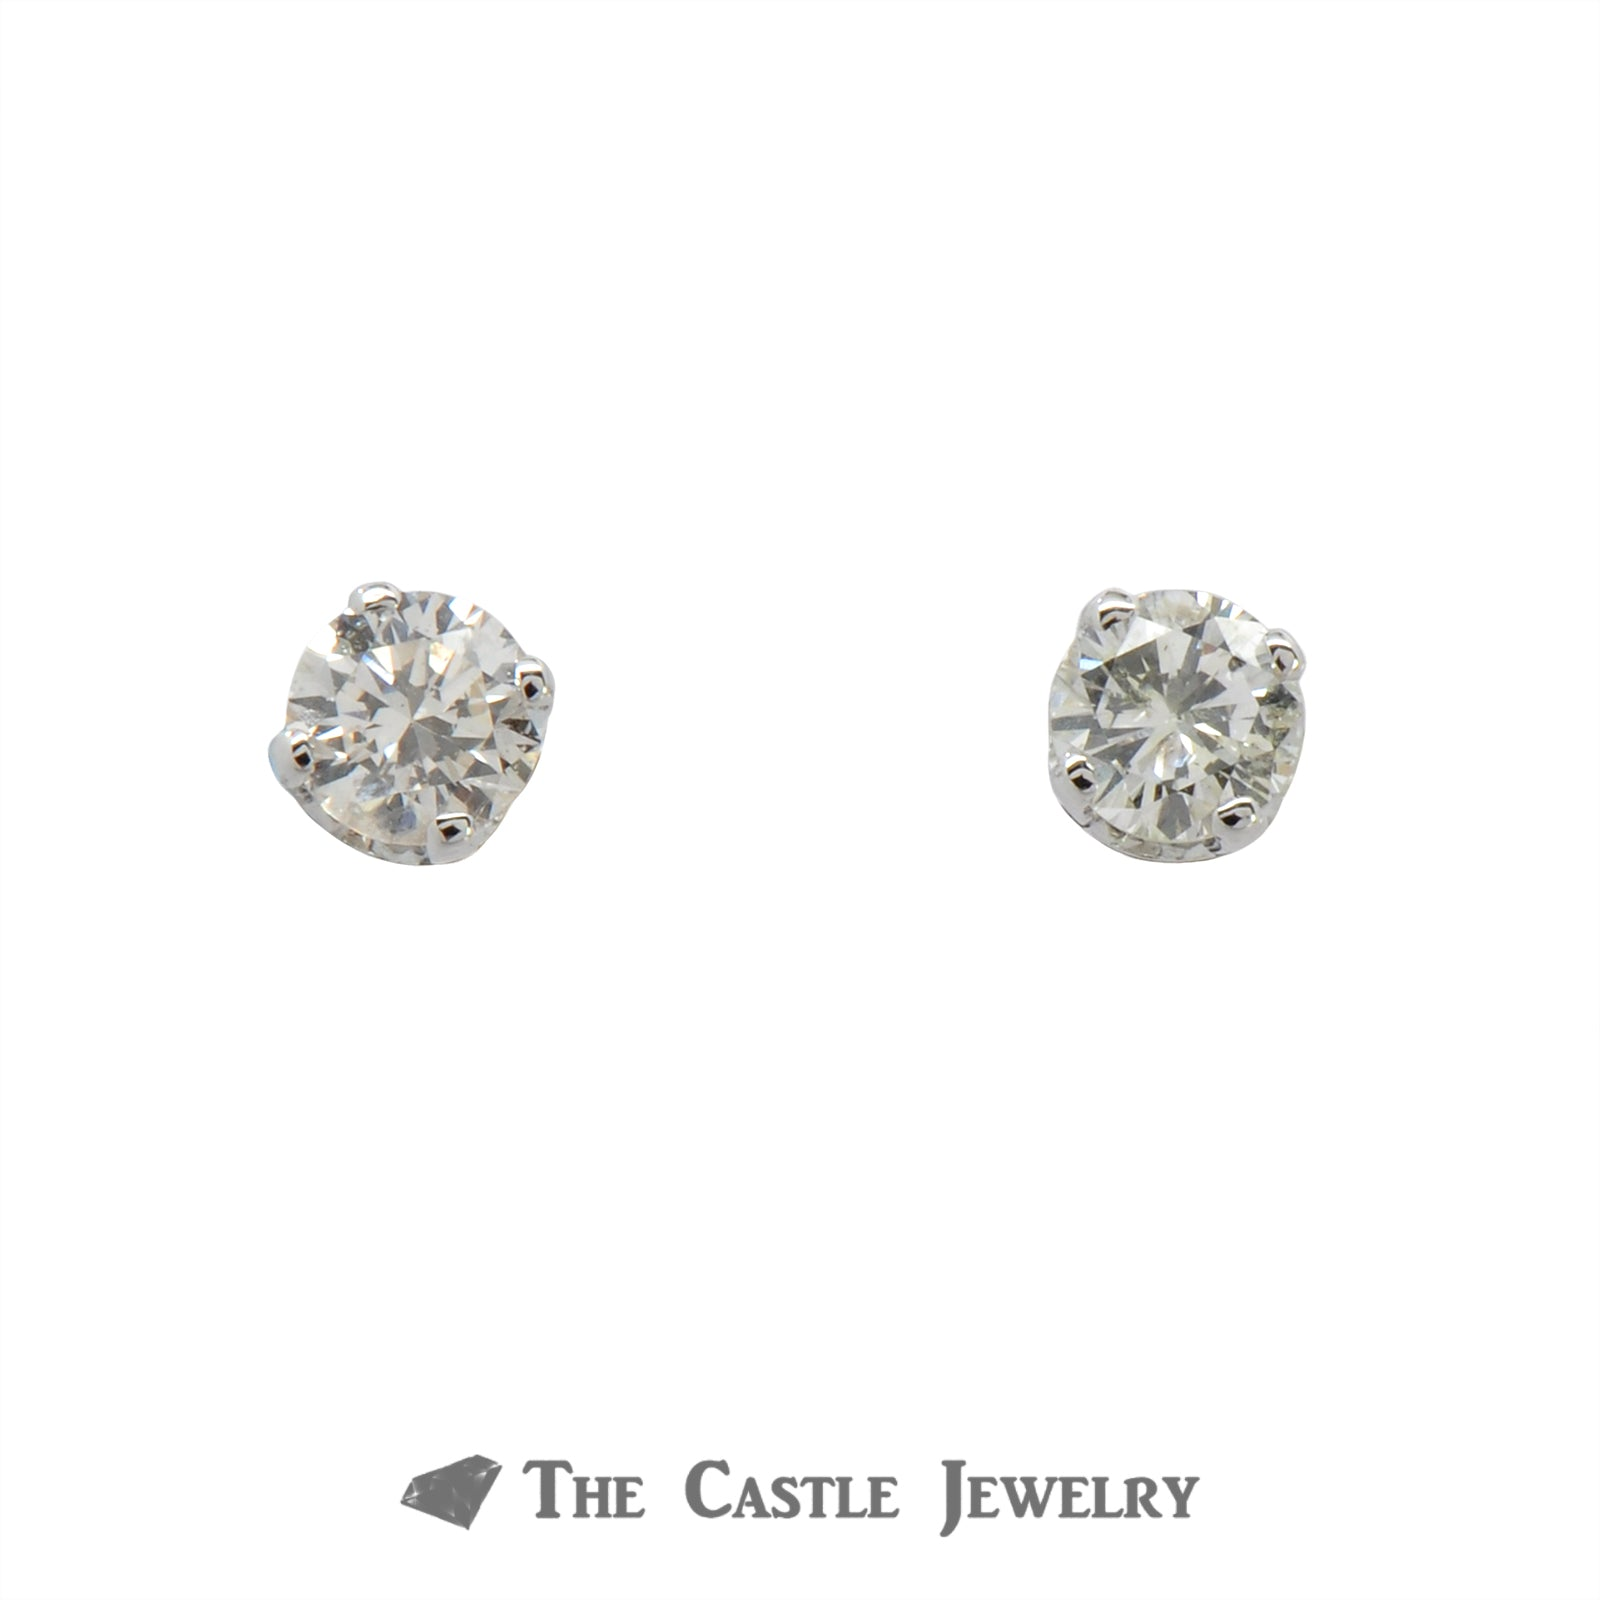 .50cttw Round Brilliant Cut Diamond Stud Earrings in 14k White Gold